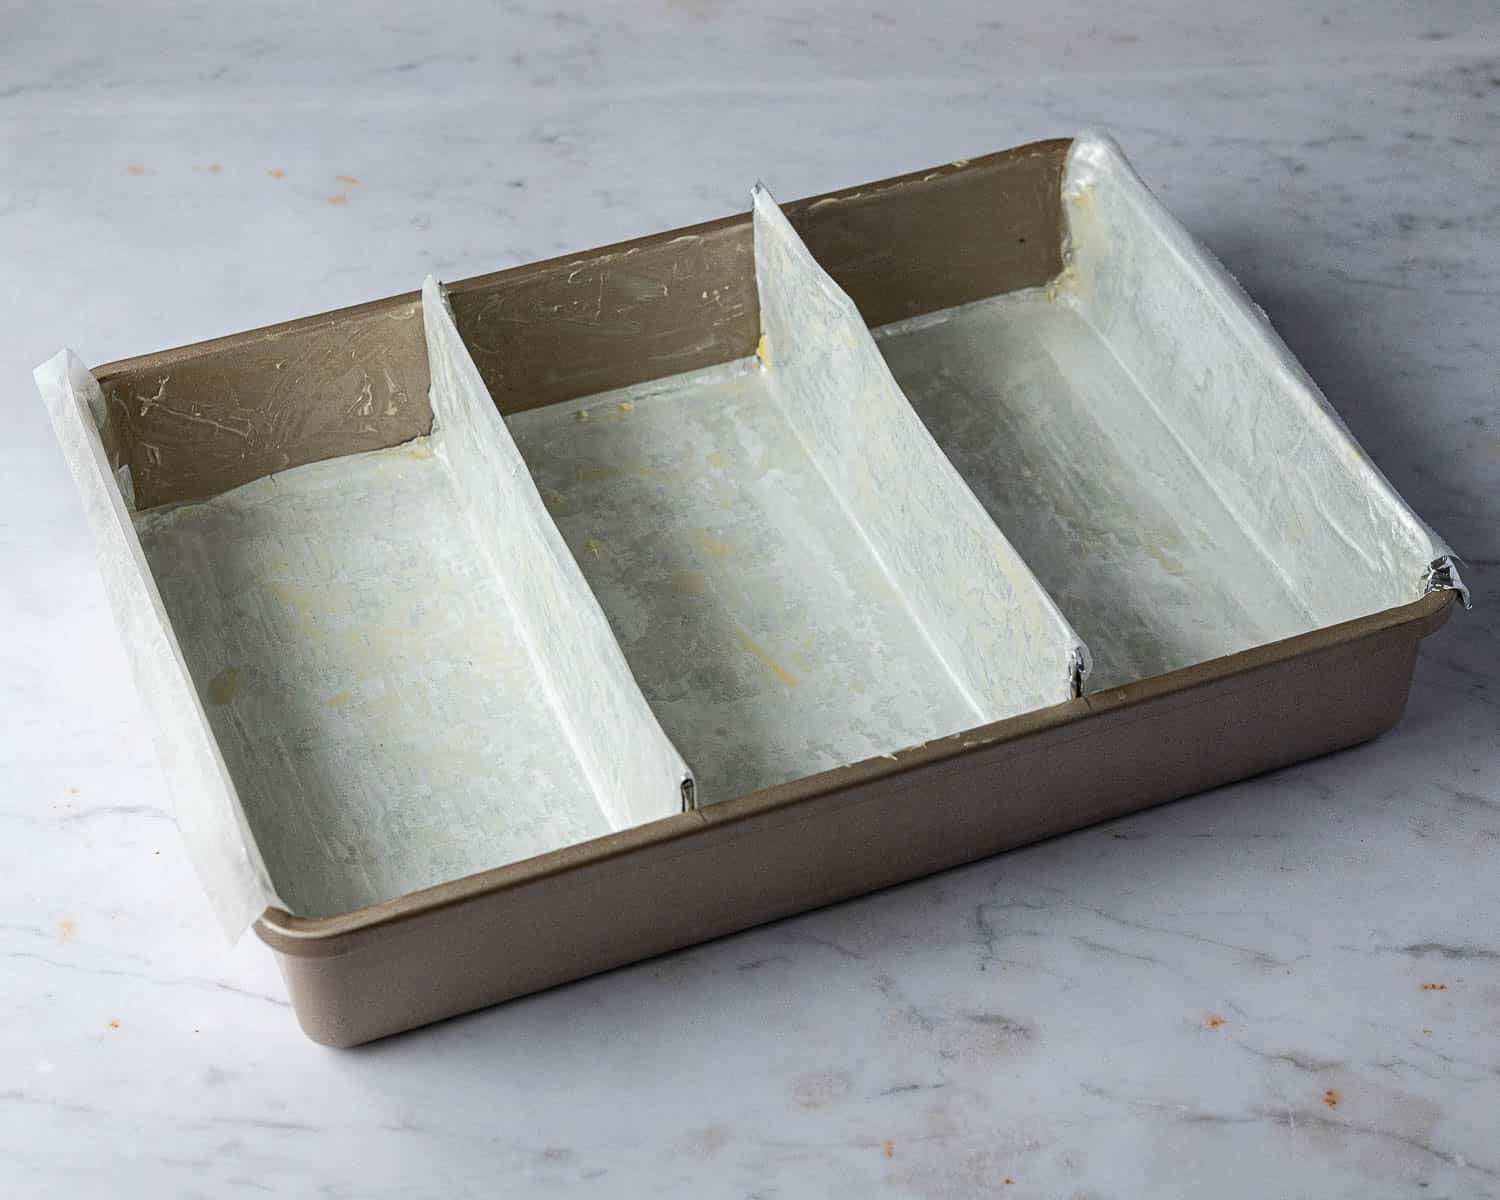 The lined and divided cake tin.